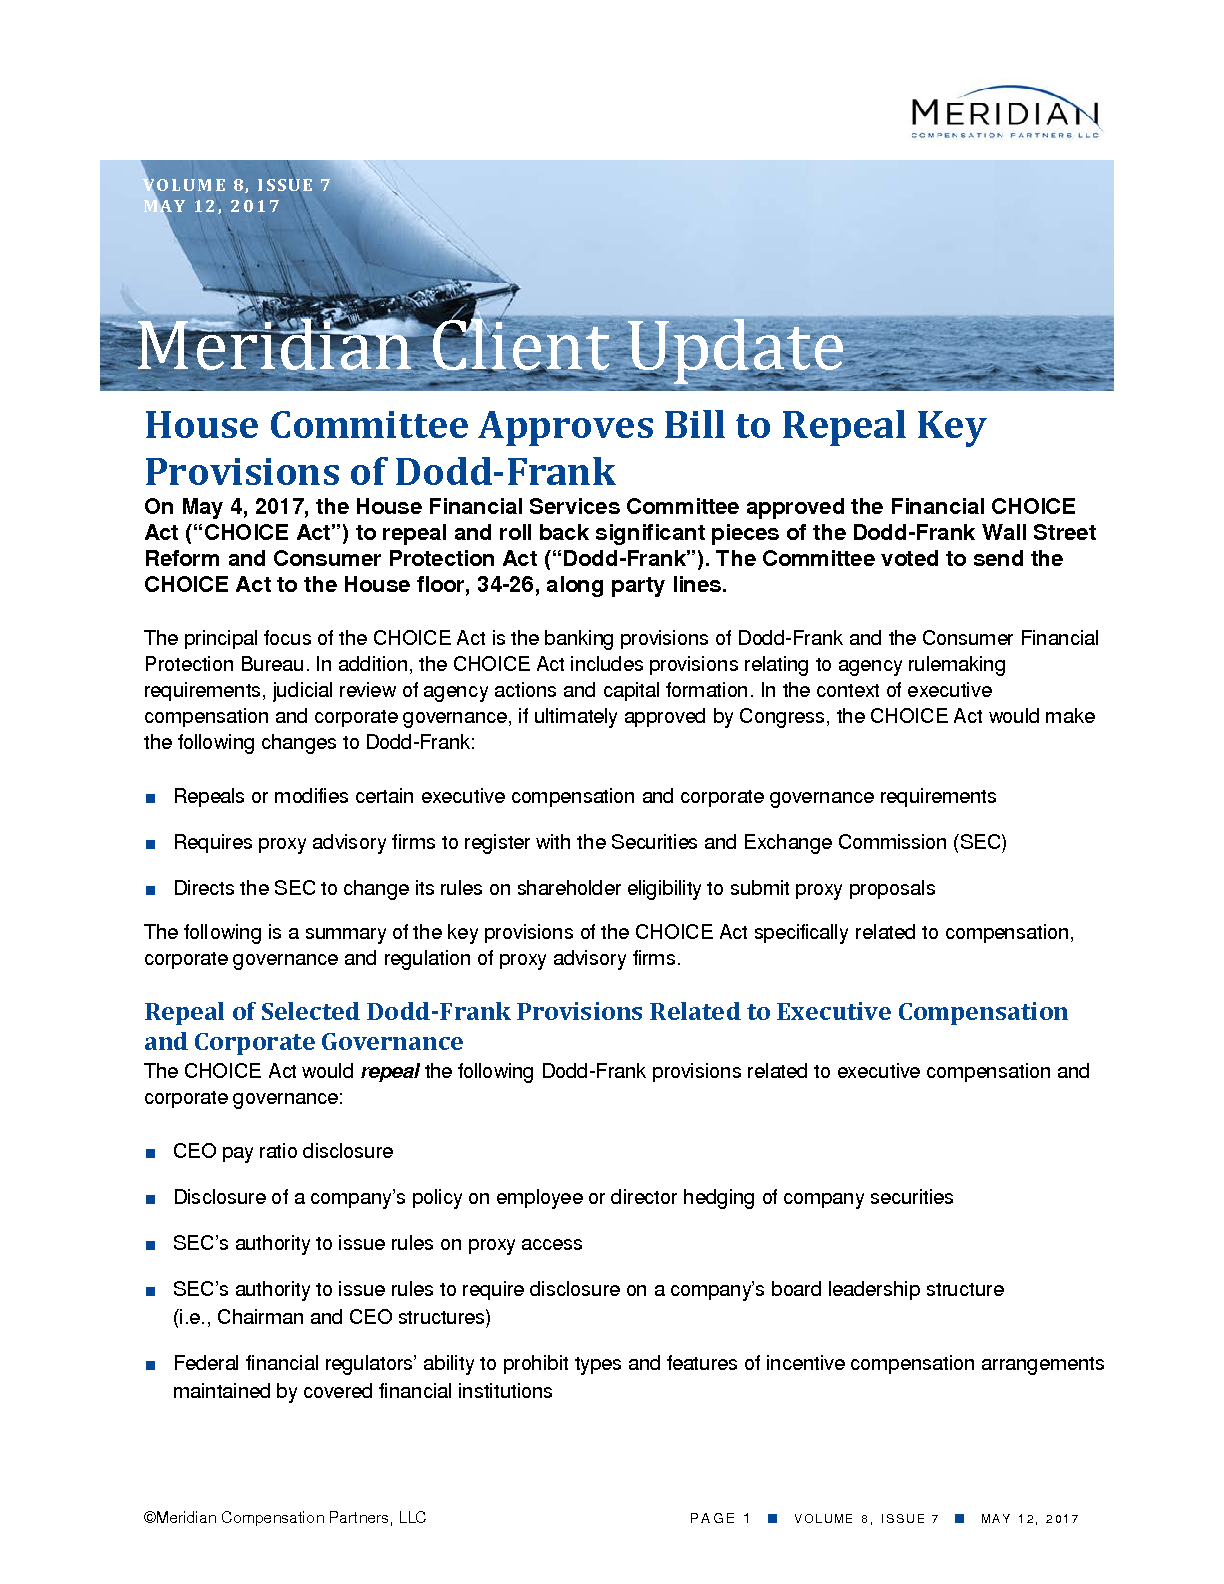 House Committee Approves Bill to Repeal Key Provisions of Dodd-Frank (PDF)